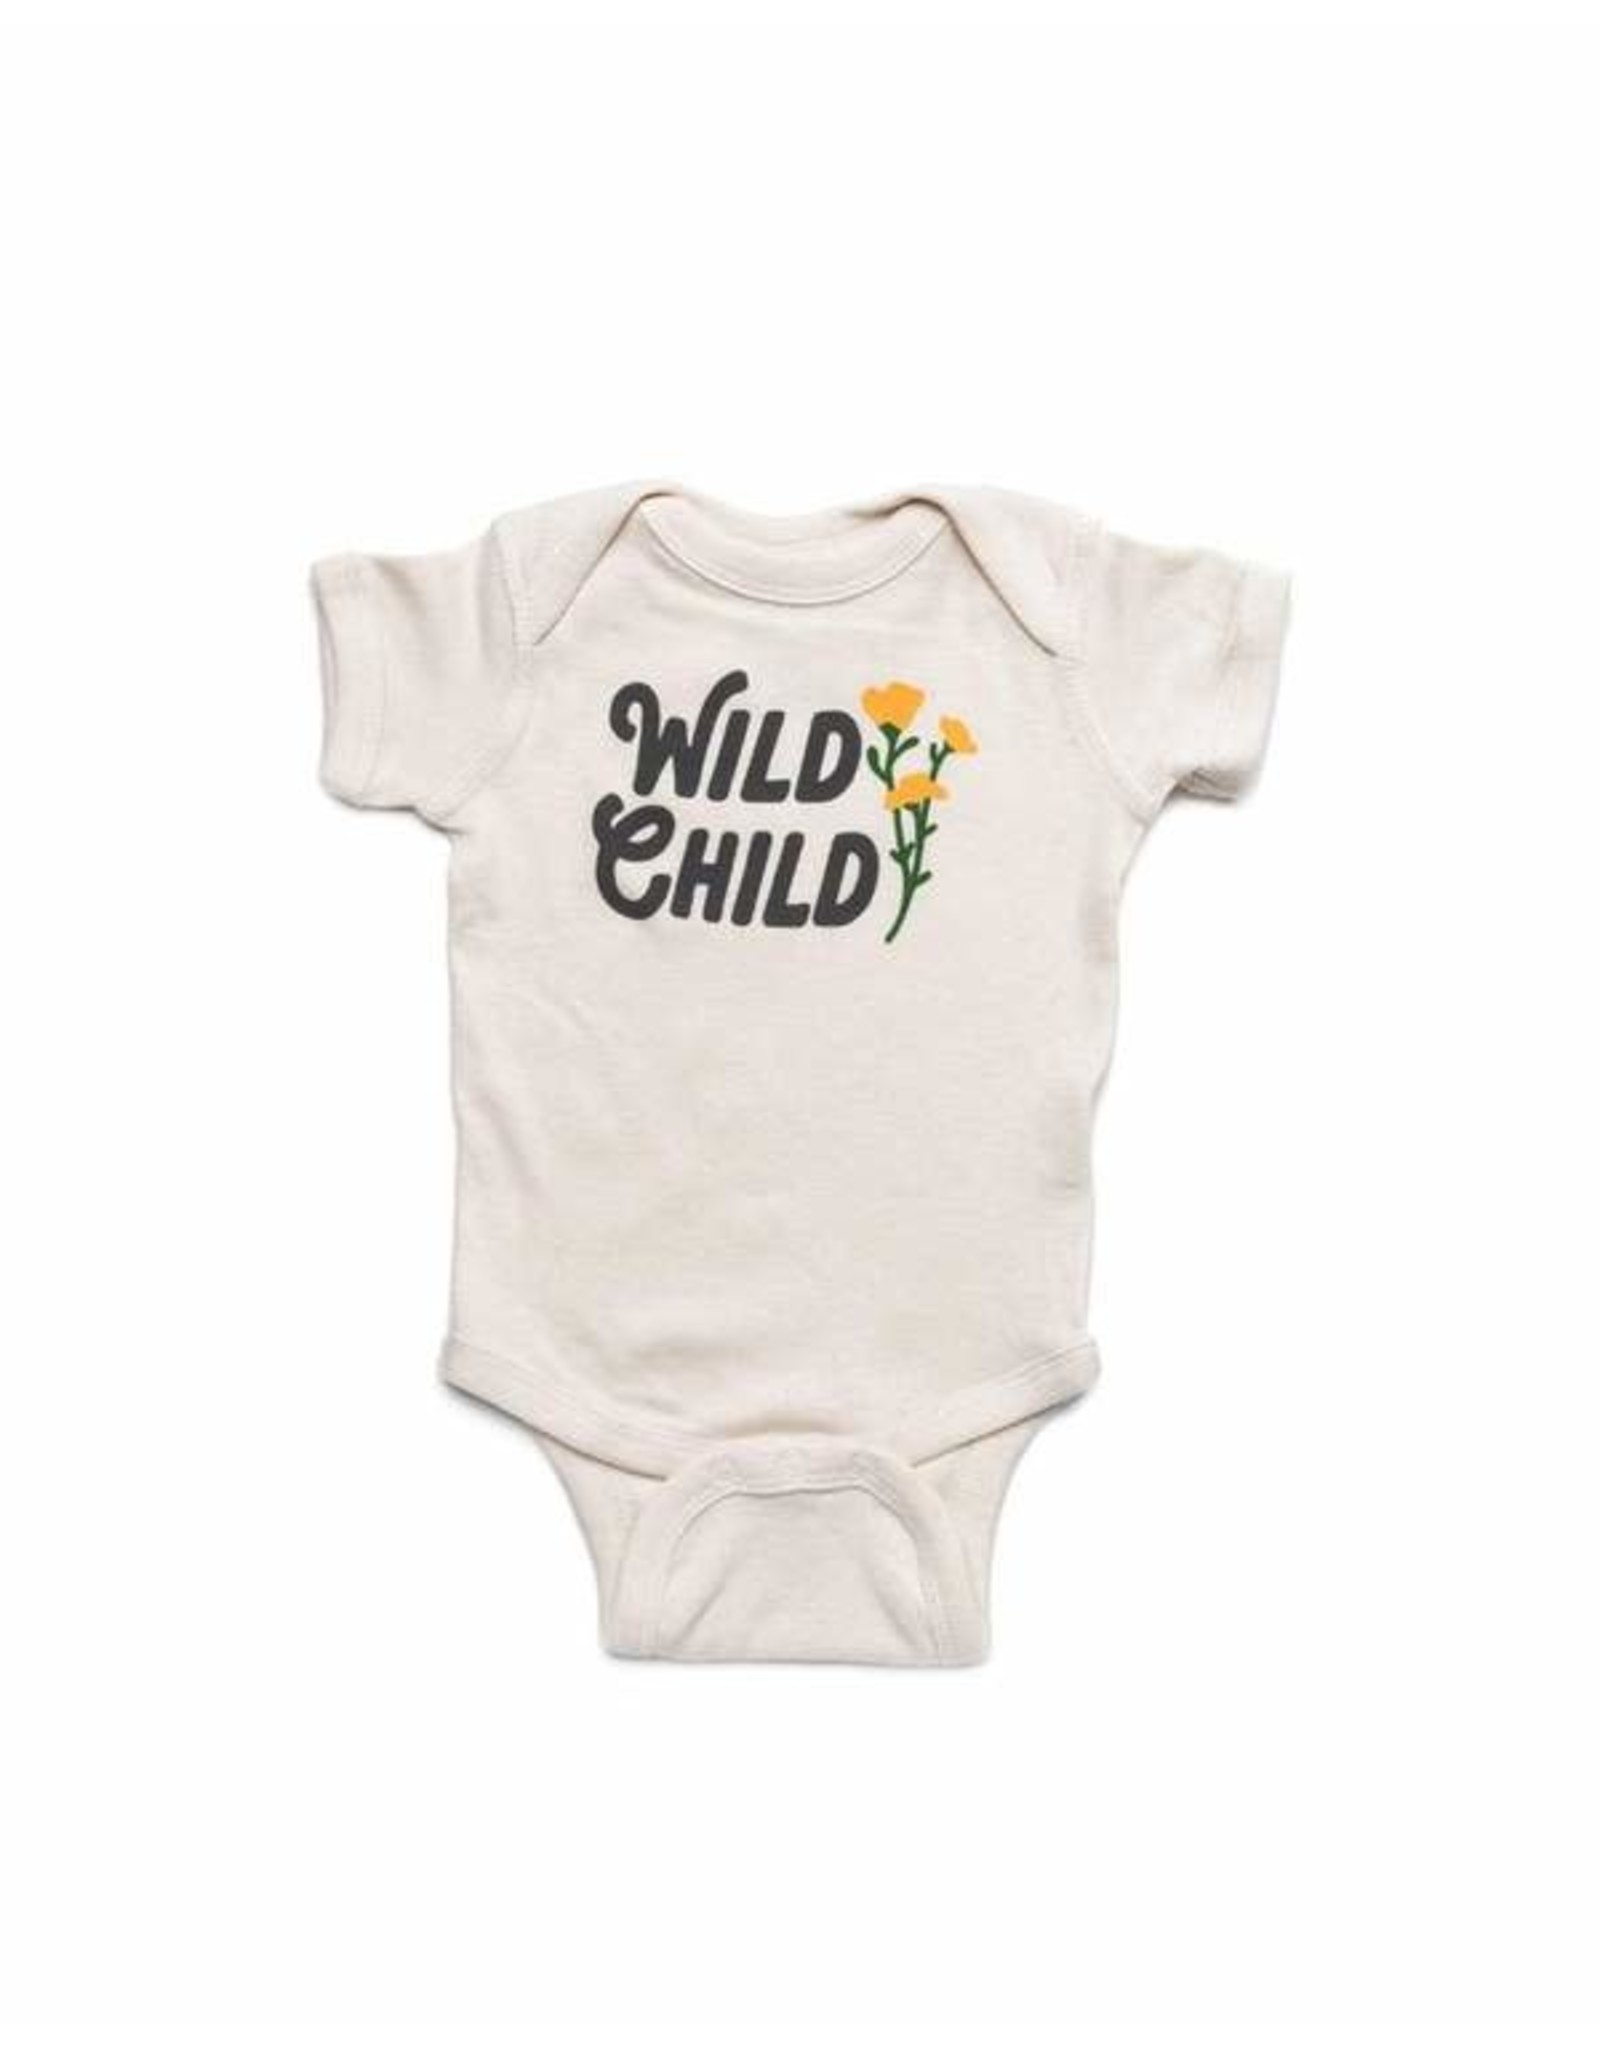 Keep Nature Wild KNW Wild Child Onesie: Natural - 24mo